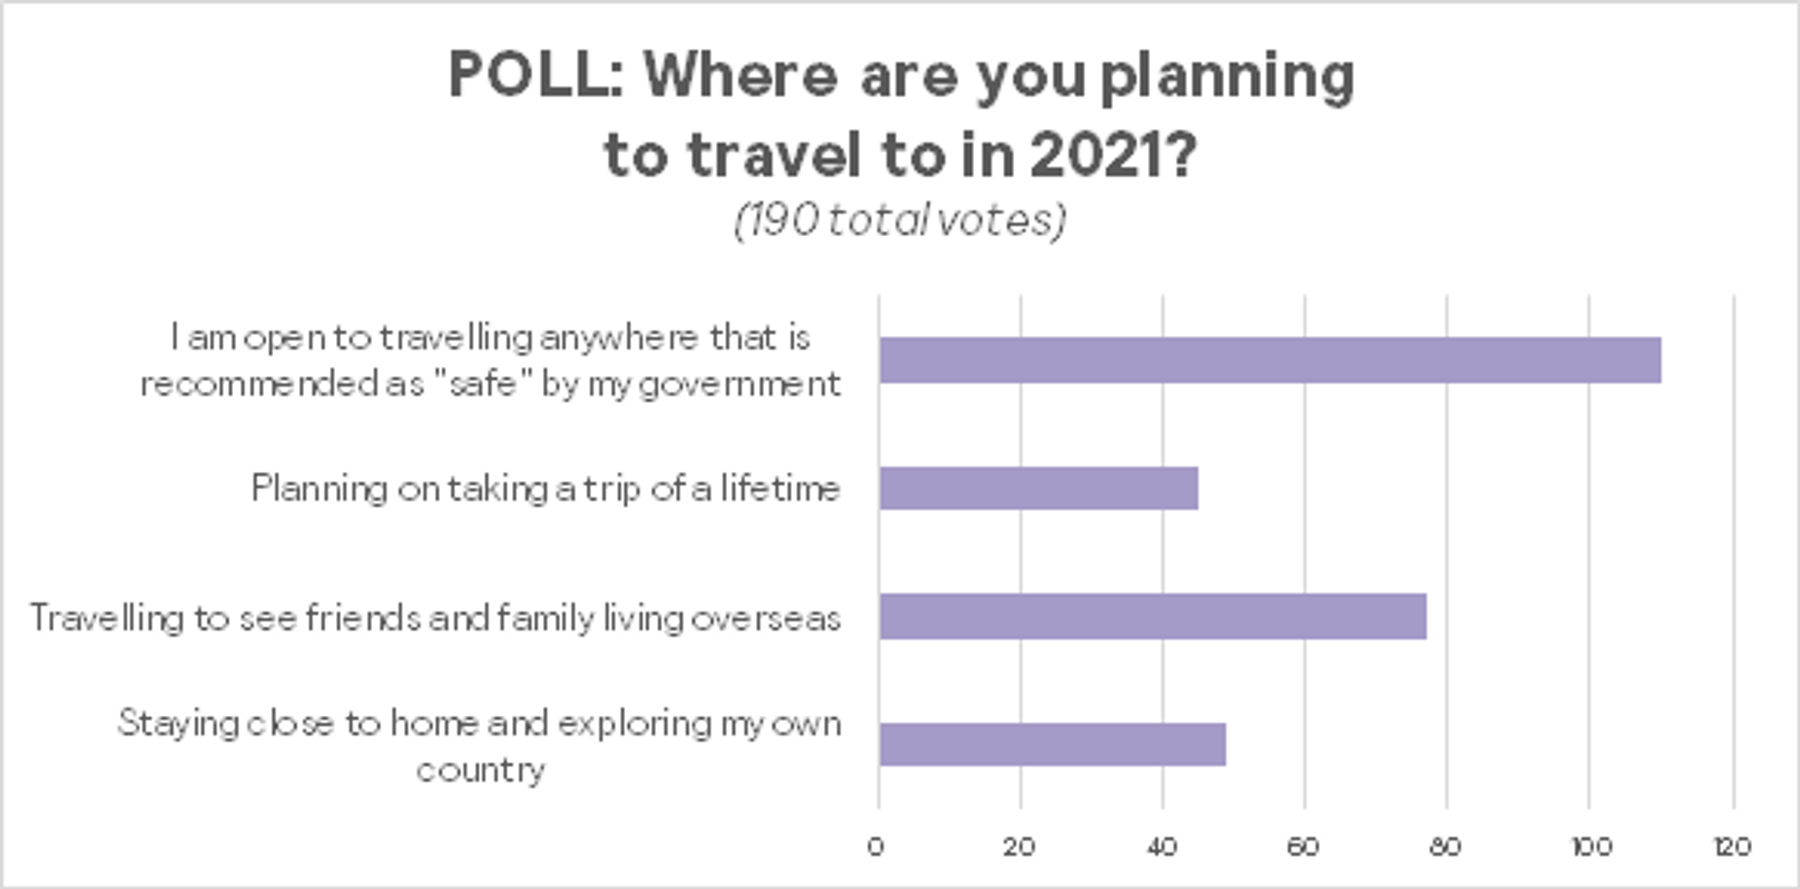 Poll showing results about where they plan to travel in 2021